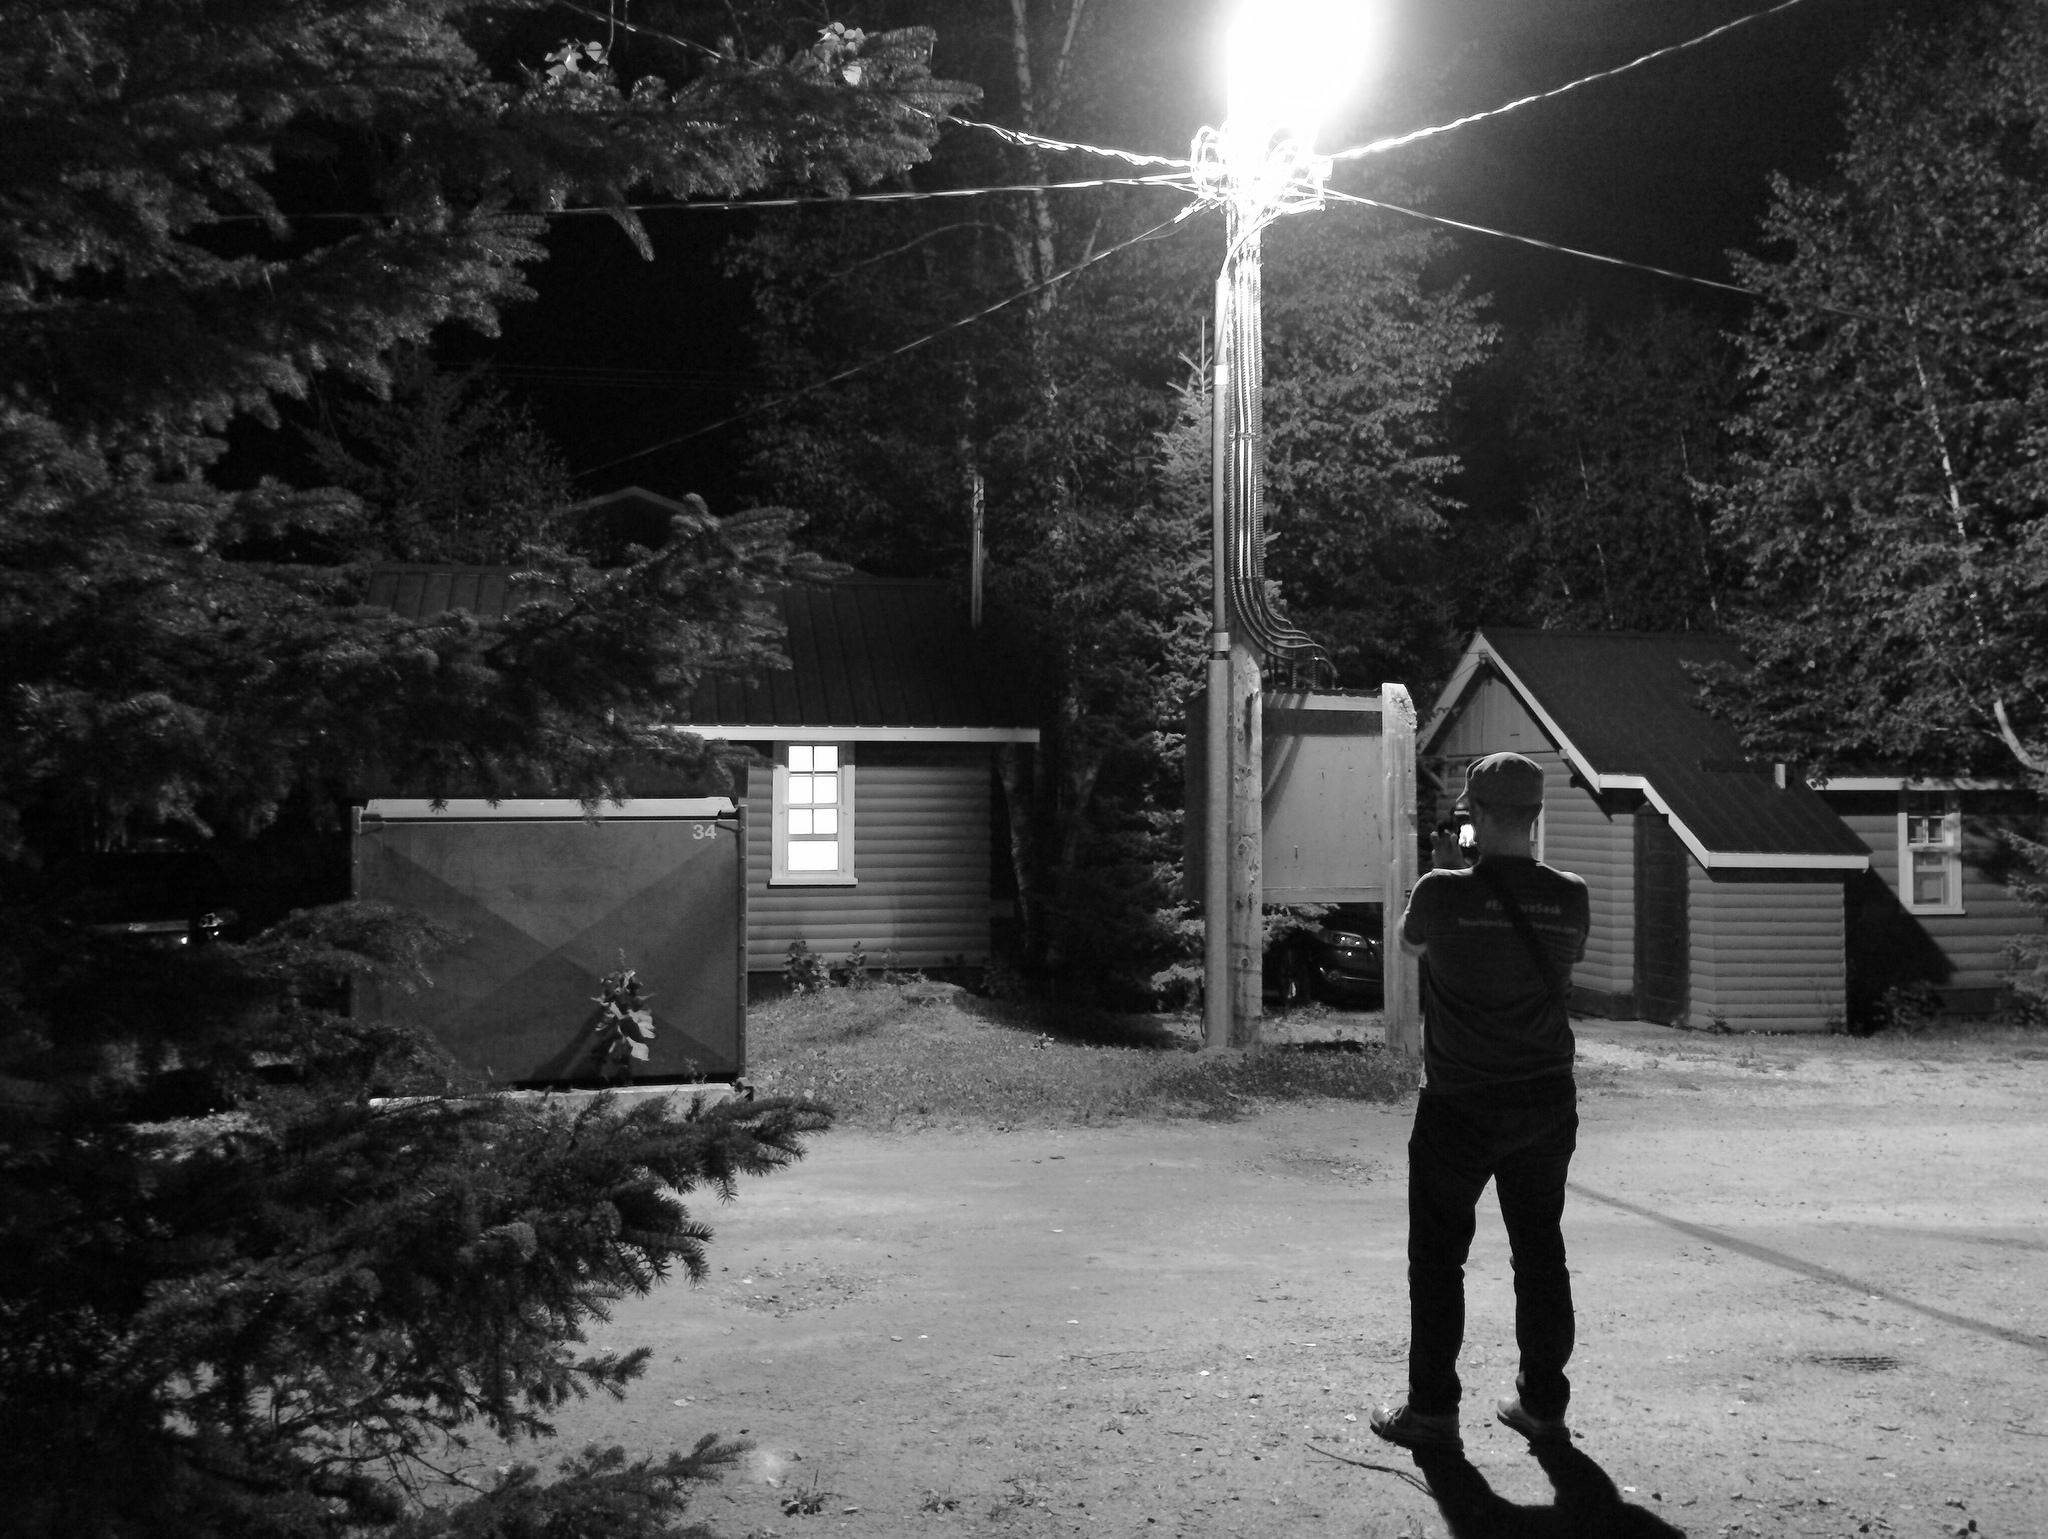 This is Aidan taking a photo of a streetlight at night in Waskesiu.